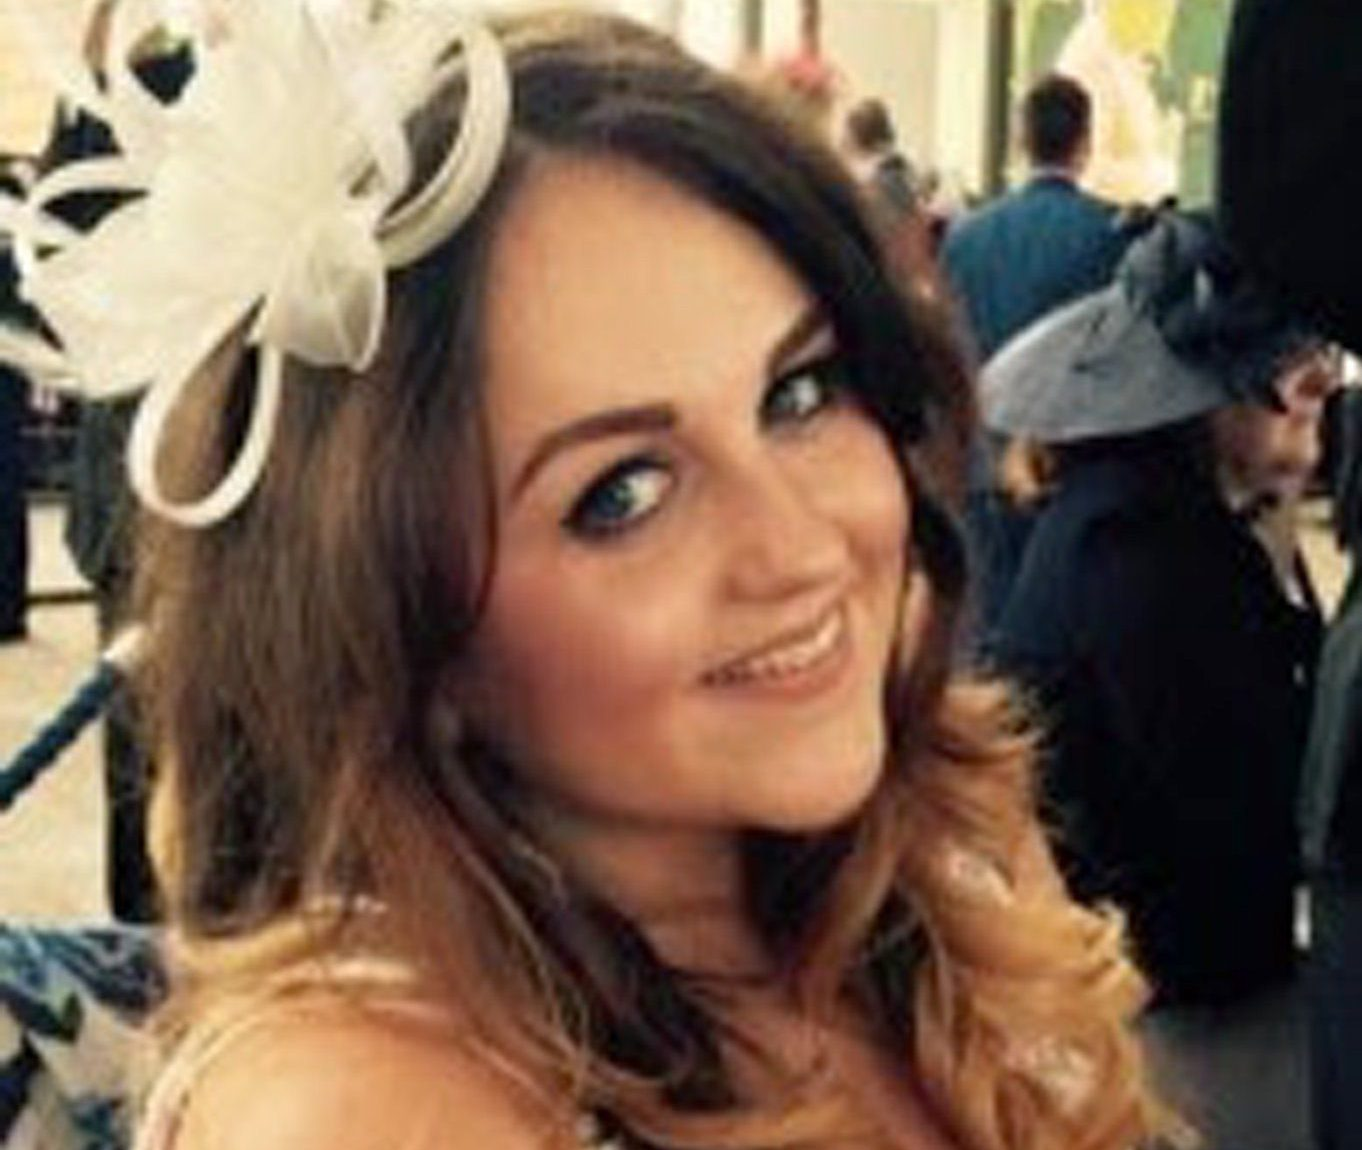 FILE PICTURE - Charlotte Sophie Brown, 24, who preferred to be known as Charli died in the River Thames on Tuesday, 8 December. See NATIONAL story NNSPEED. Police are investigating the death of a young woman who died in a speedboat accident whilst on a first date as a possible manslaughter. Charlotte Brown, known as Charli, died in December 2015 after she and her 29-year-old date were thrown into the river Thames near Wandsworth Bridge. The 24-year-old met her date on an online app and after dining at the Shard in central London, she went with the man on a speedboat trip on the Thames. Shouting was heard coming from the river at Plantation Wharf at around 11.45pm with the Marine Support Unit, alongside the National Police Air Service, the Coastguard, and the London Fire Brigade all scrambled to the scene. Emergency services rescued the pair from the water but, while her date survived, Charli was pronounced dead in hospital at 1.55am later that night. Police at the time deemed the death as non-suspicious but this week confirmed they are investigating whether there could be a basis for a manslaughter charge or other criminal offence. Charli, from Welling, south east London, was described as a ìfun-lovingî woman by her family.